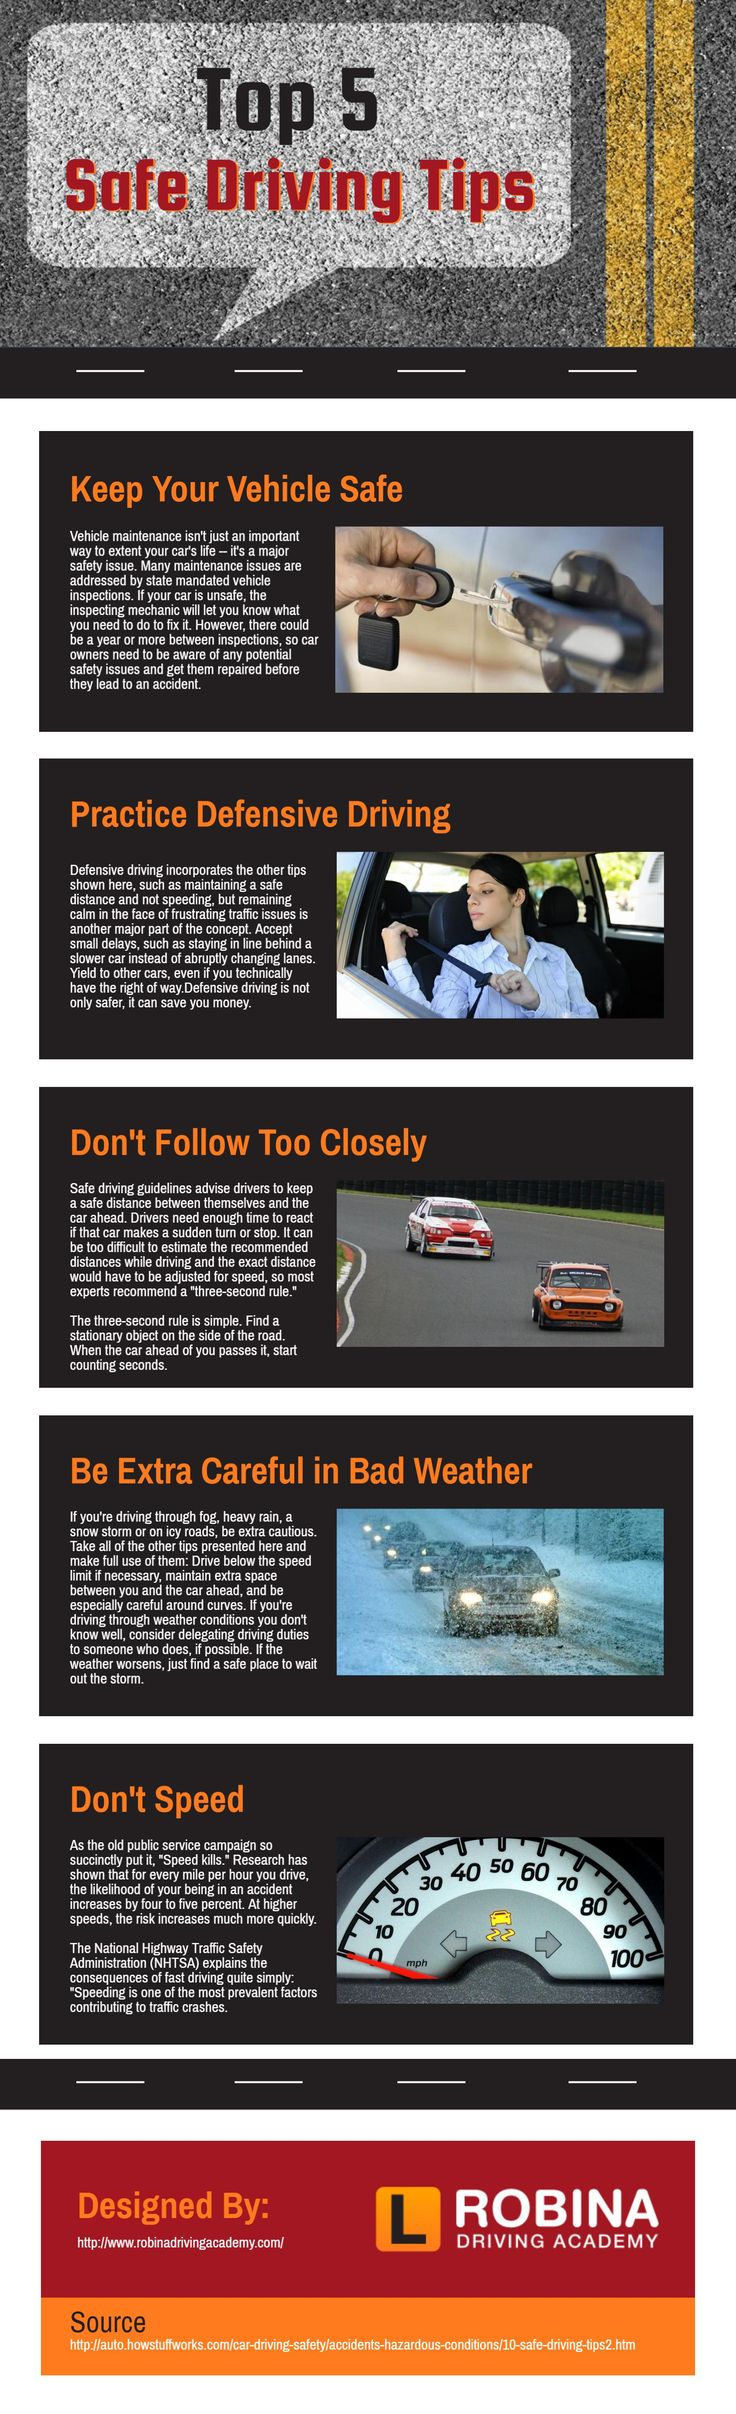 The following infographic on the top 5 safe driving tips is created by Robina Driving Academy. We all think we are safe drivers, but most of us can probably be even safer. Check out these top 5 defensive driving tips - they could save your life!